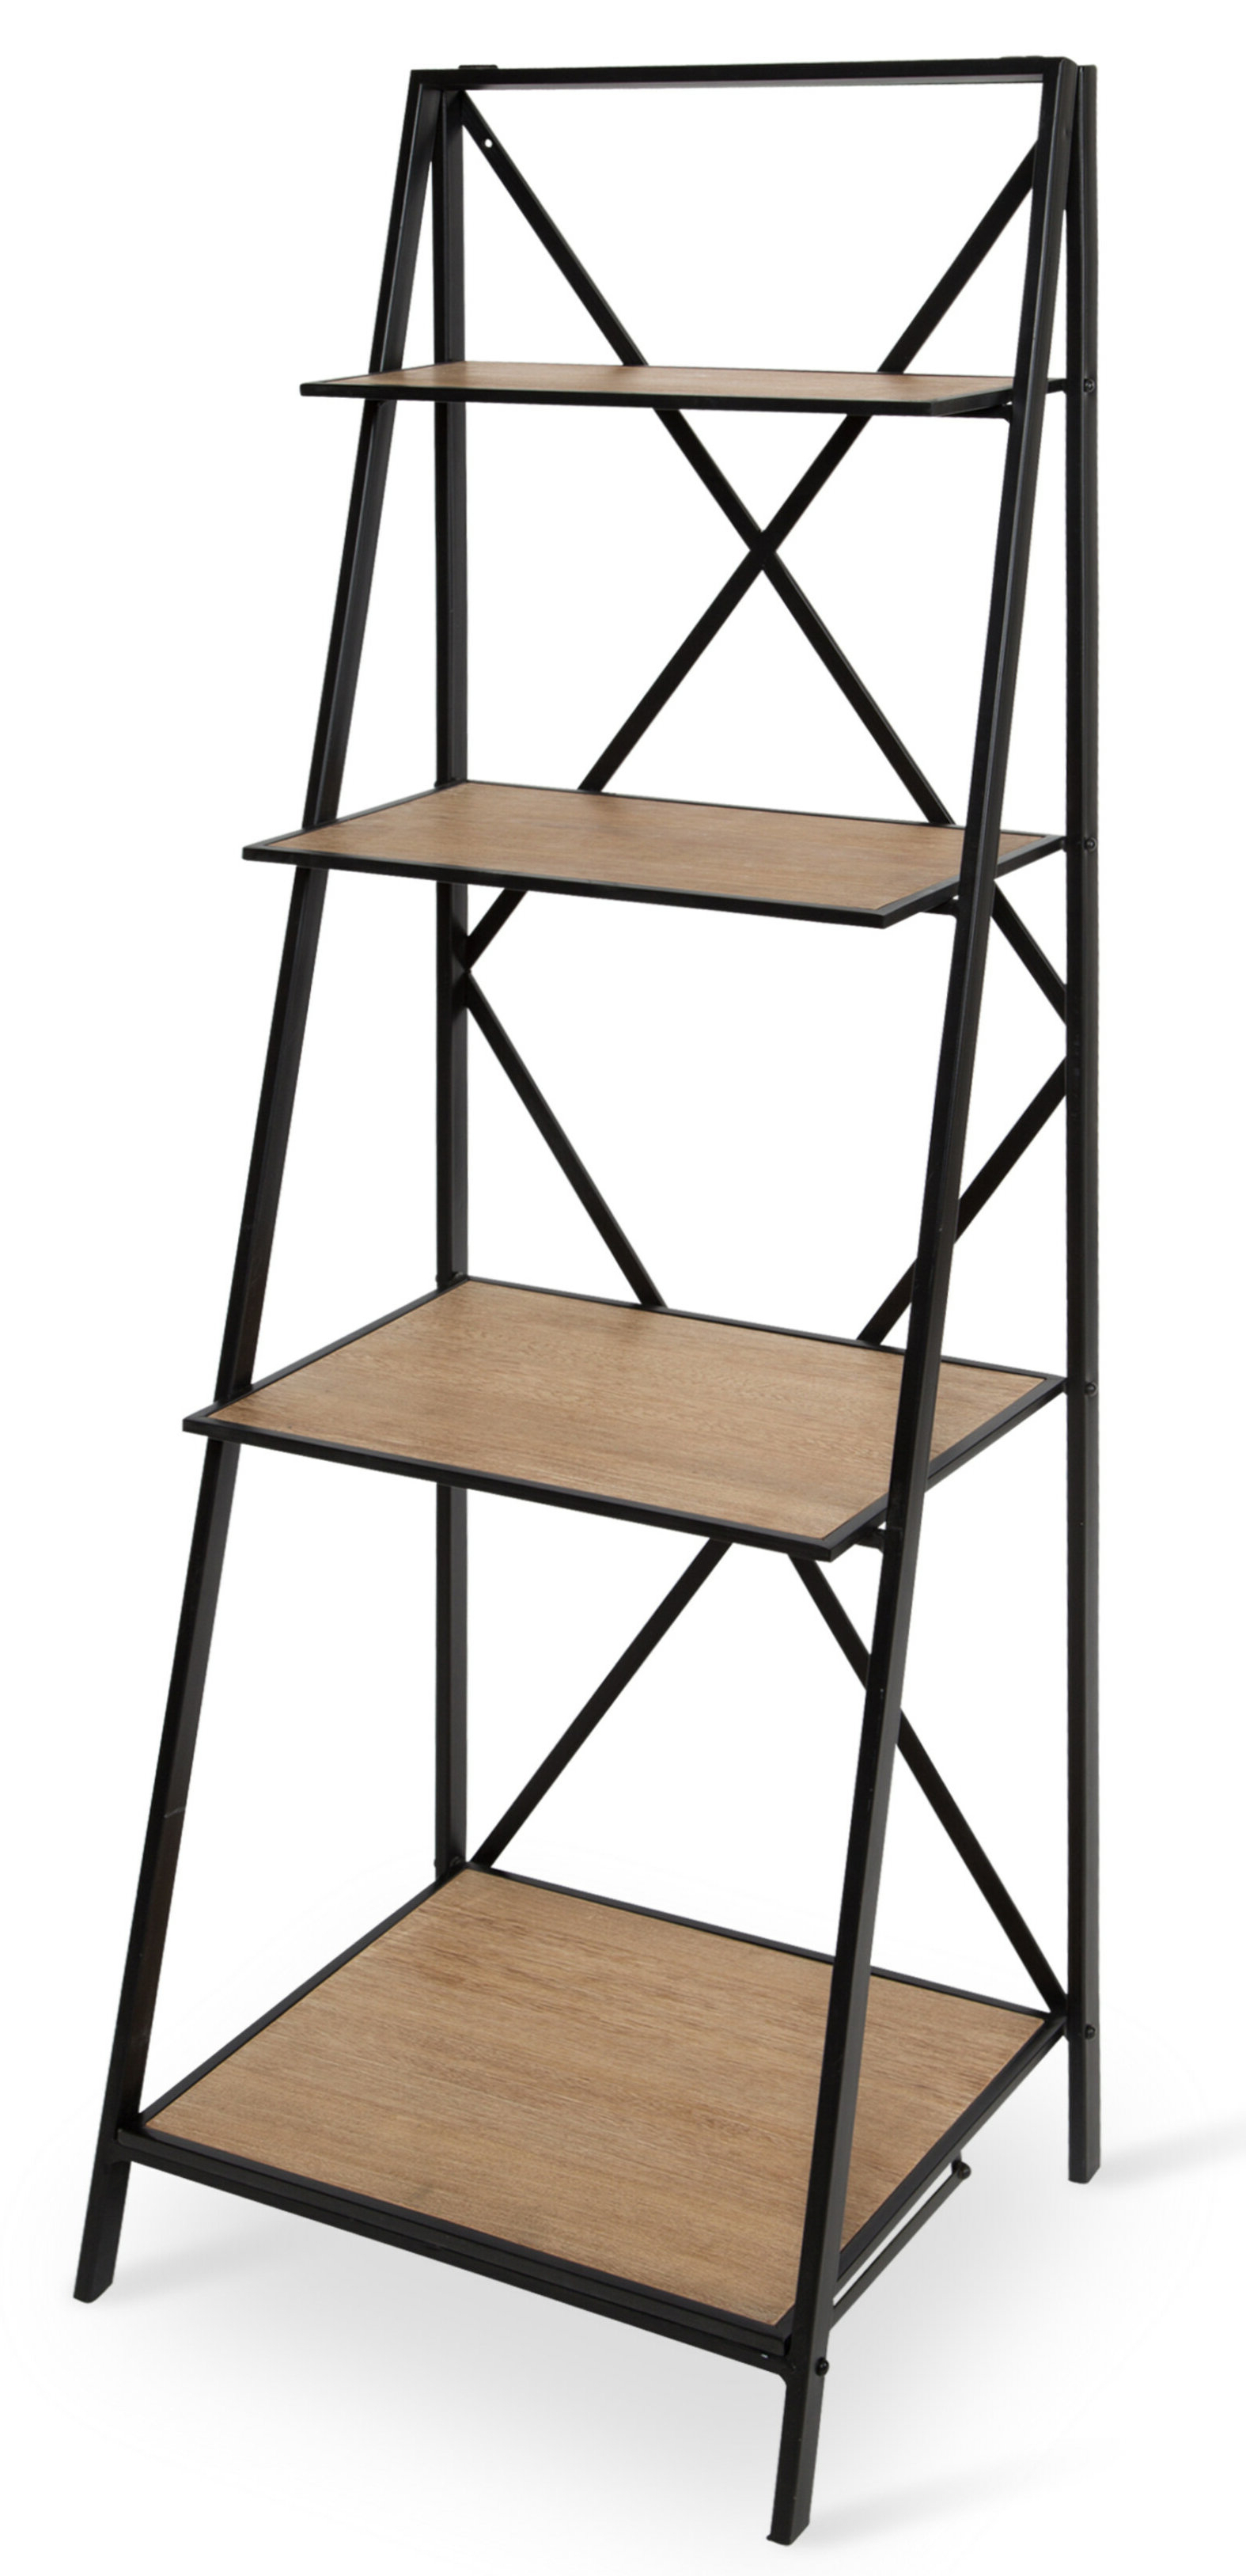 Ironton Farmhouse 4 Tiered Foldable Free Standing Wood And Metal Etagere  Bookcase Inside Most Up To Date Rech 4 Tier Etagere Bookcases (Gallery 11 of 20)